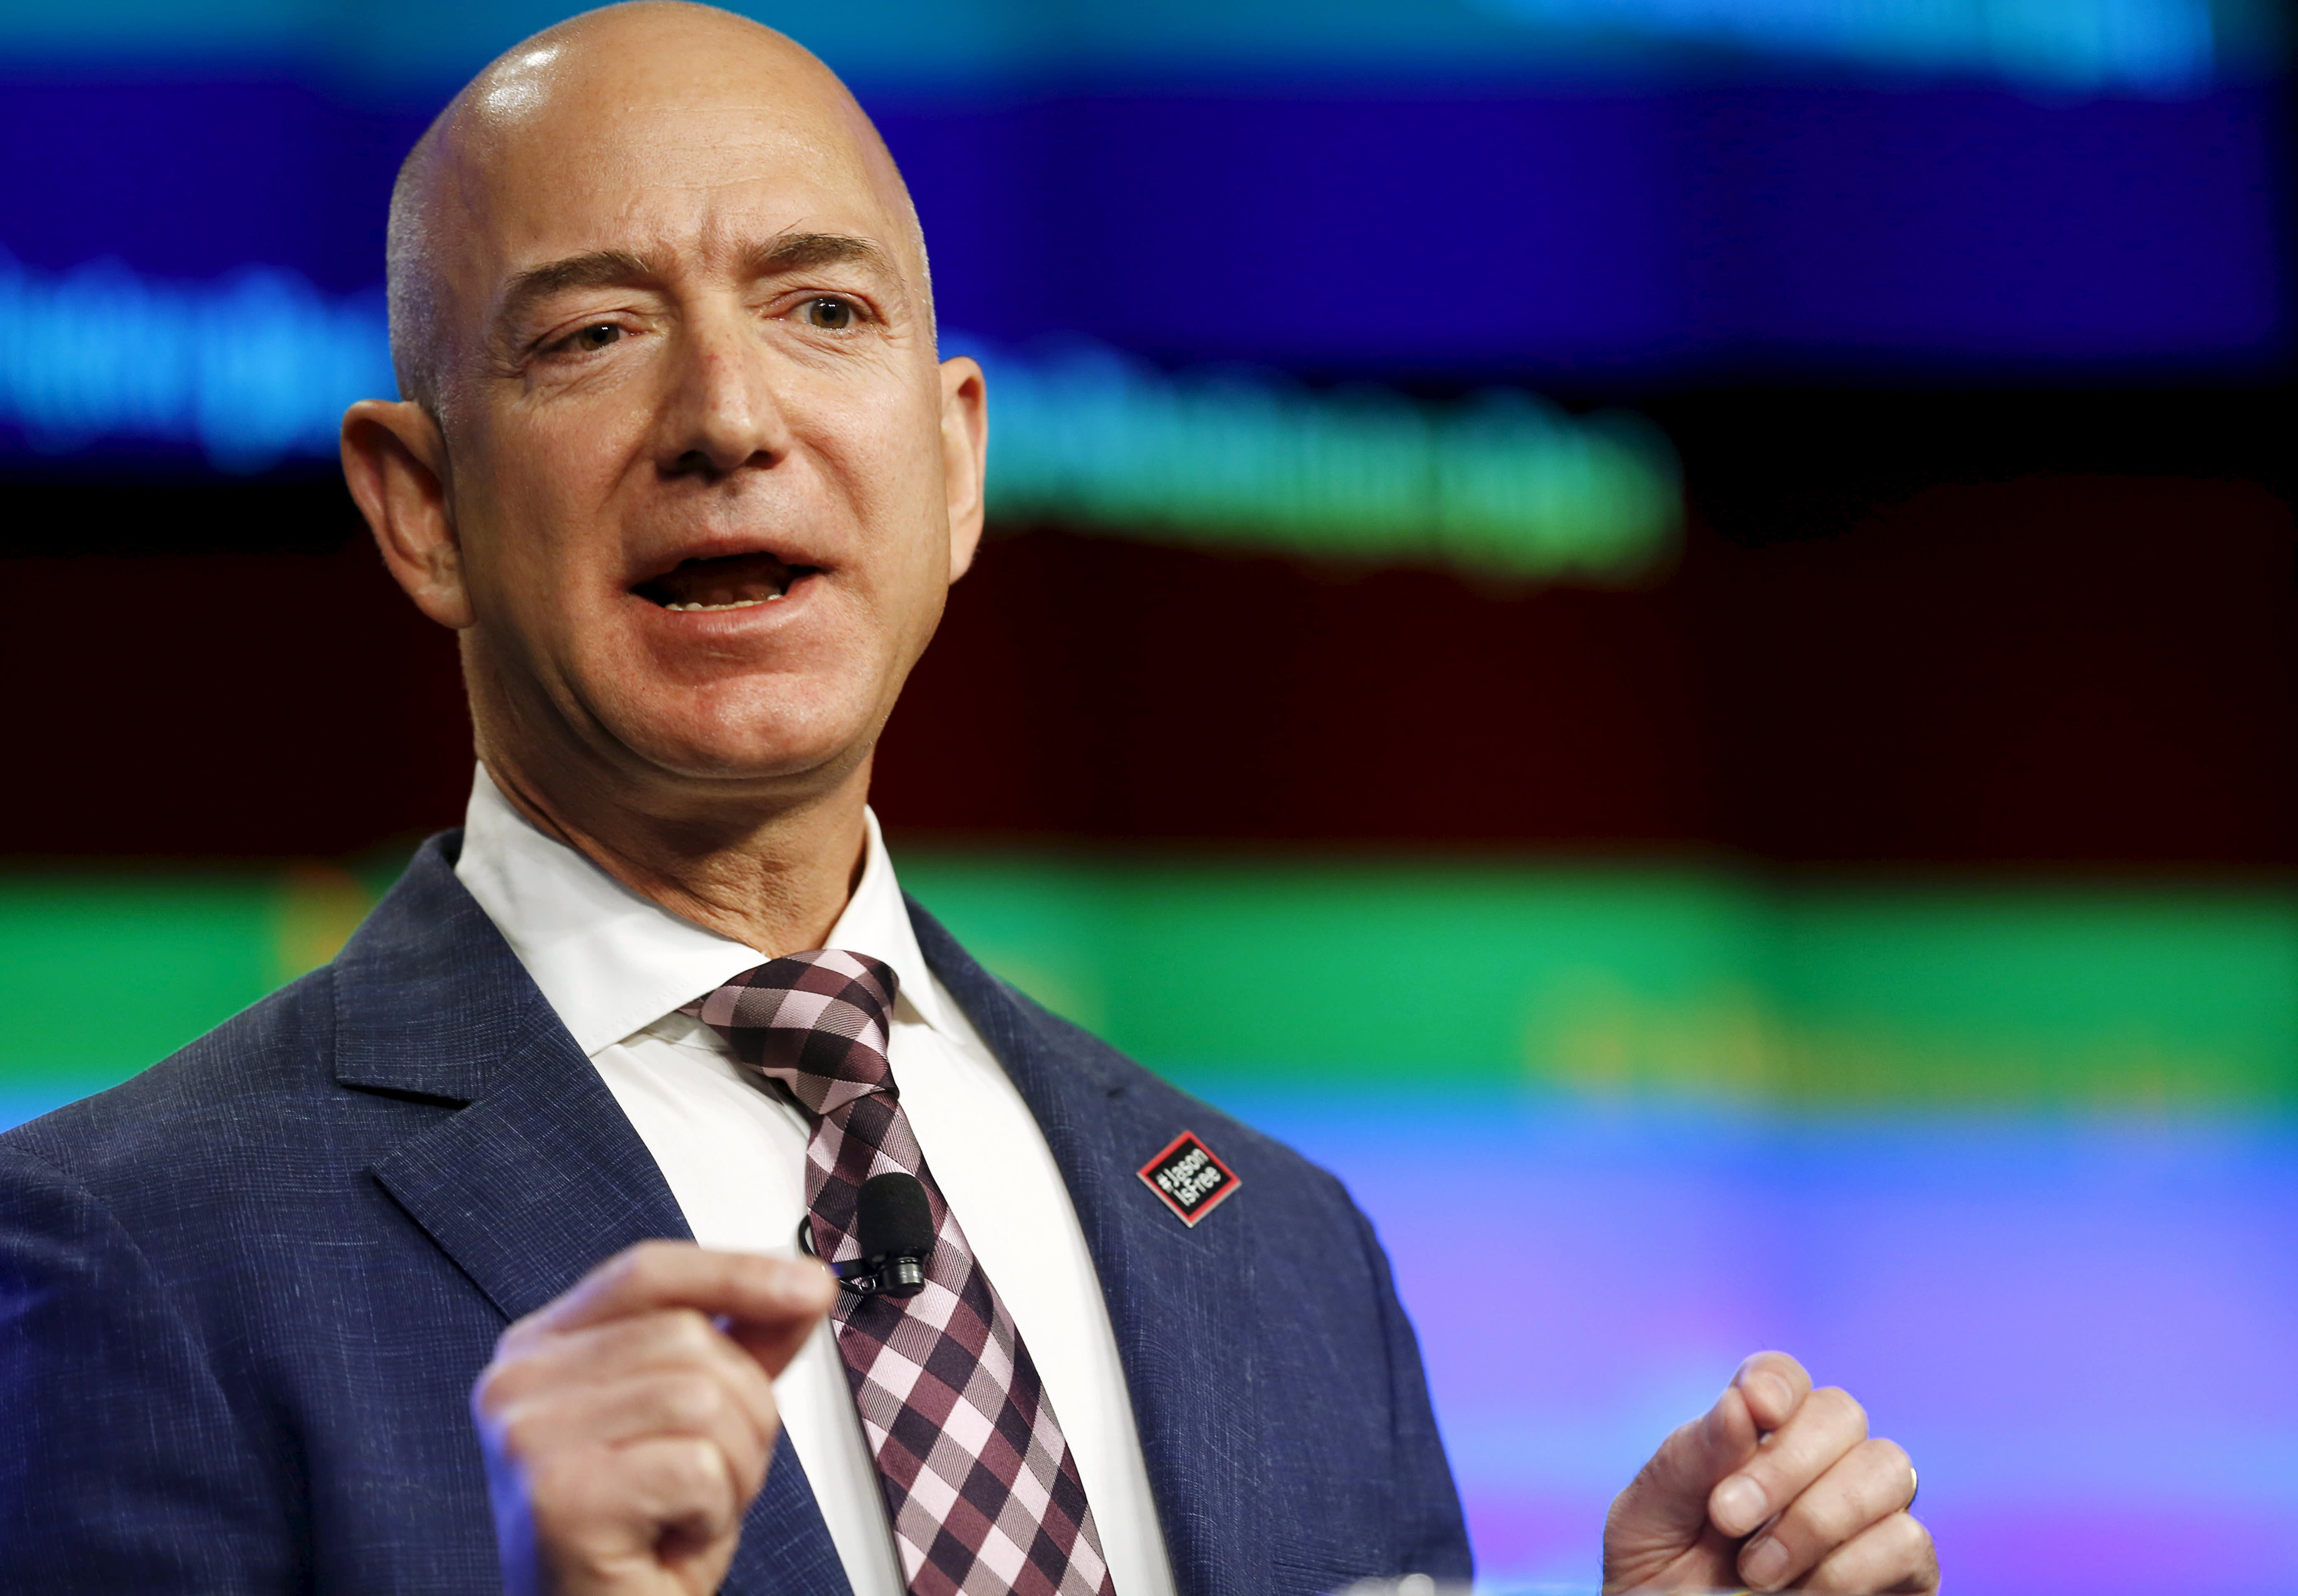 Morgan Stanley: Amazon could be a $1 trillion company within